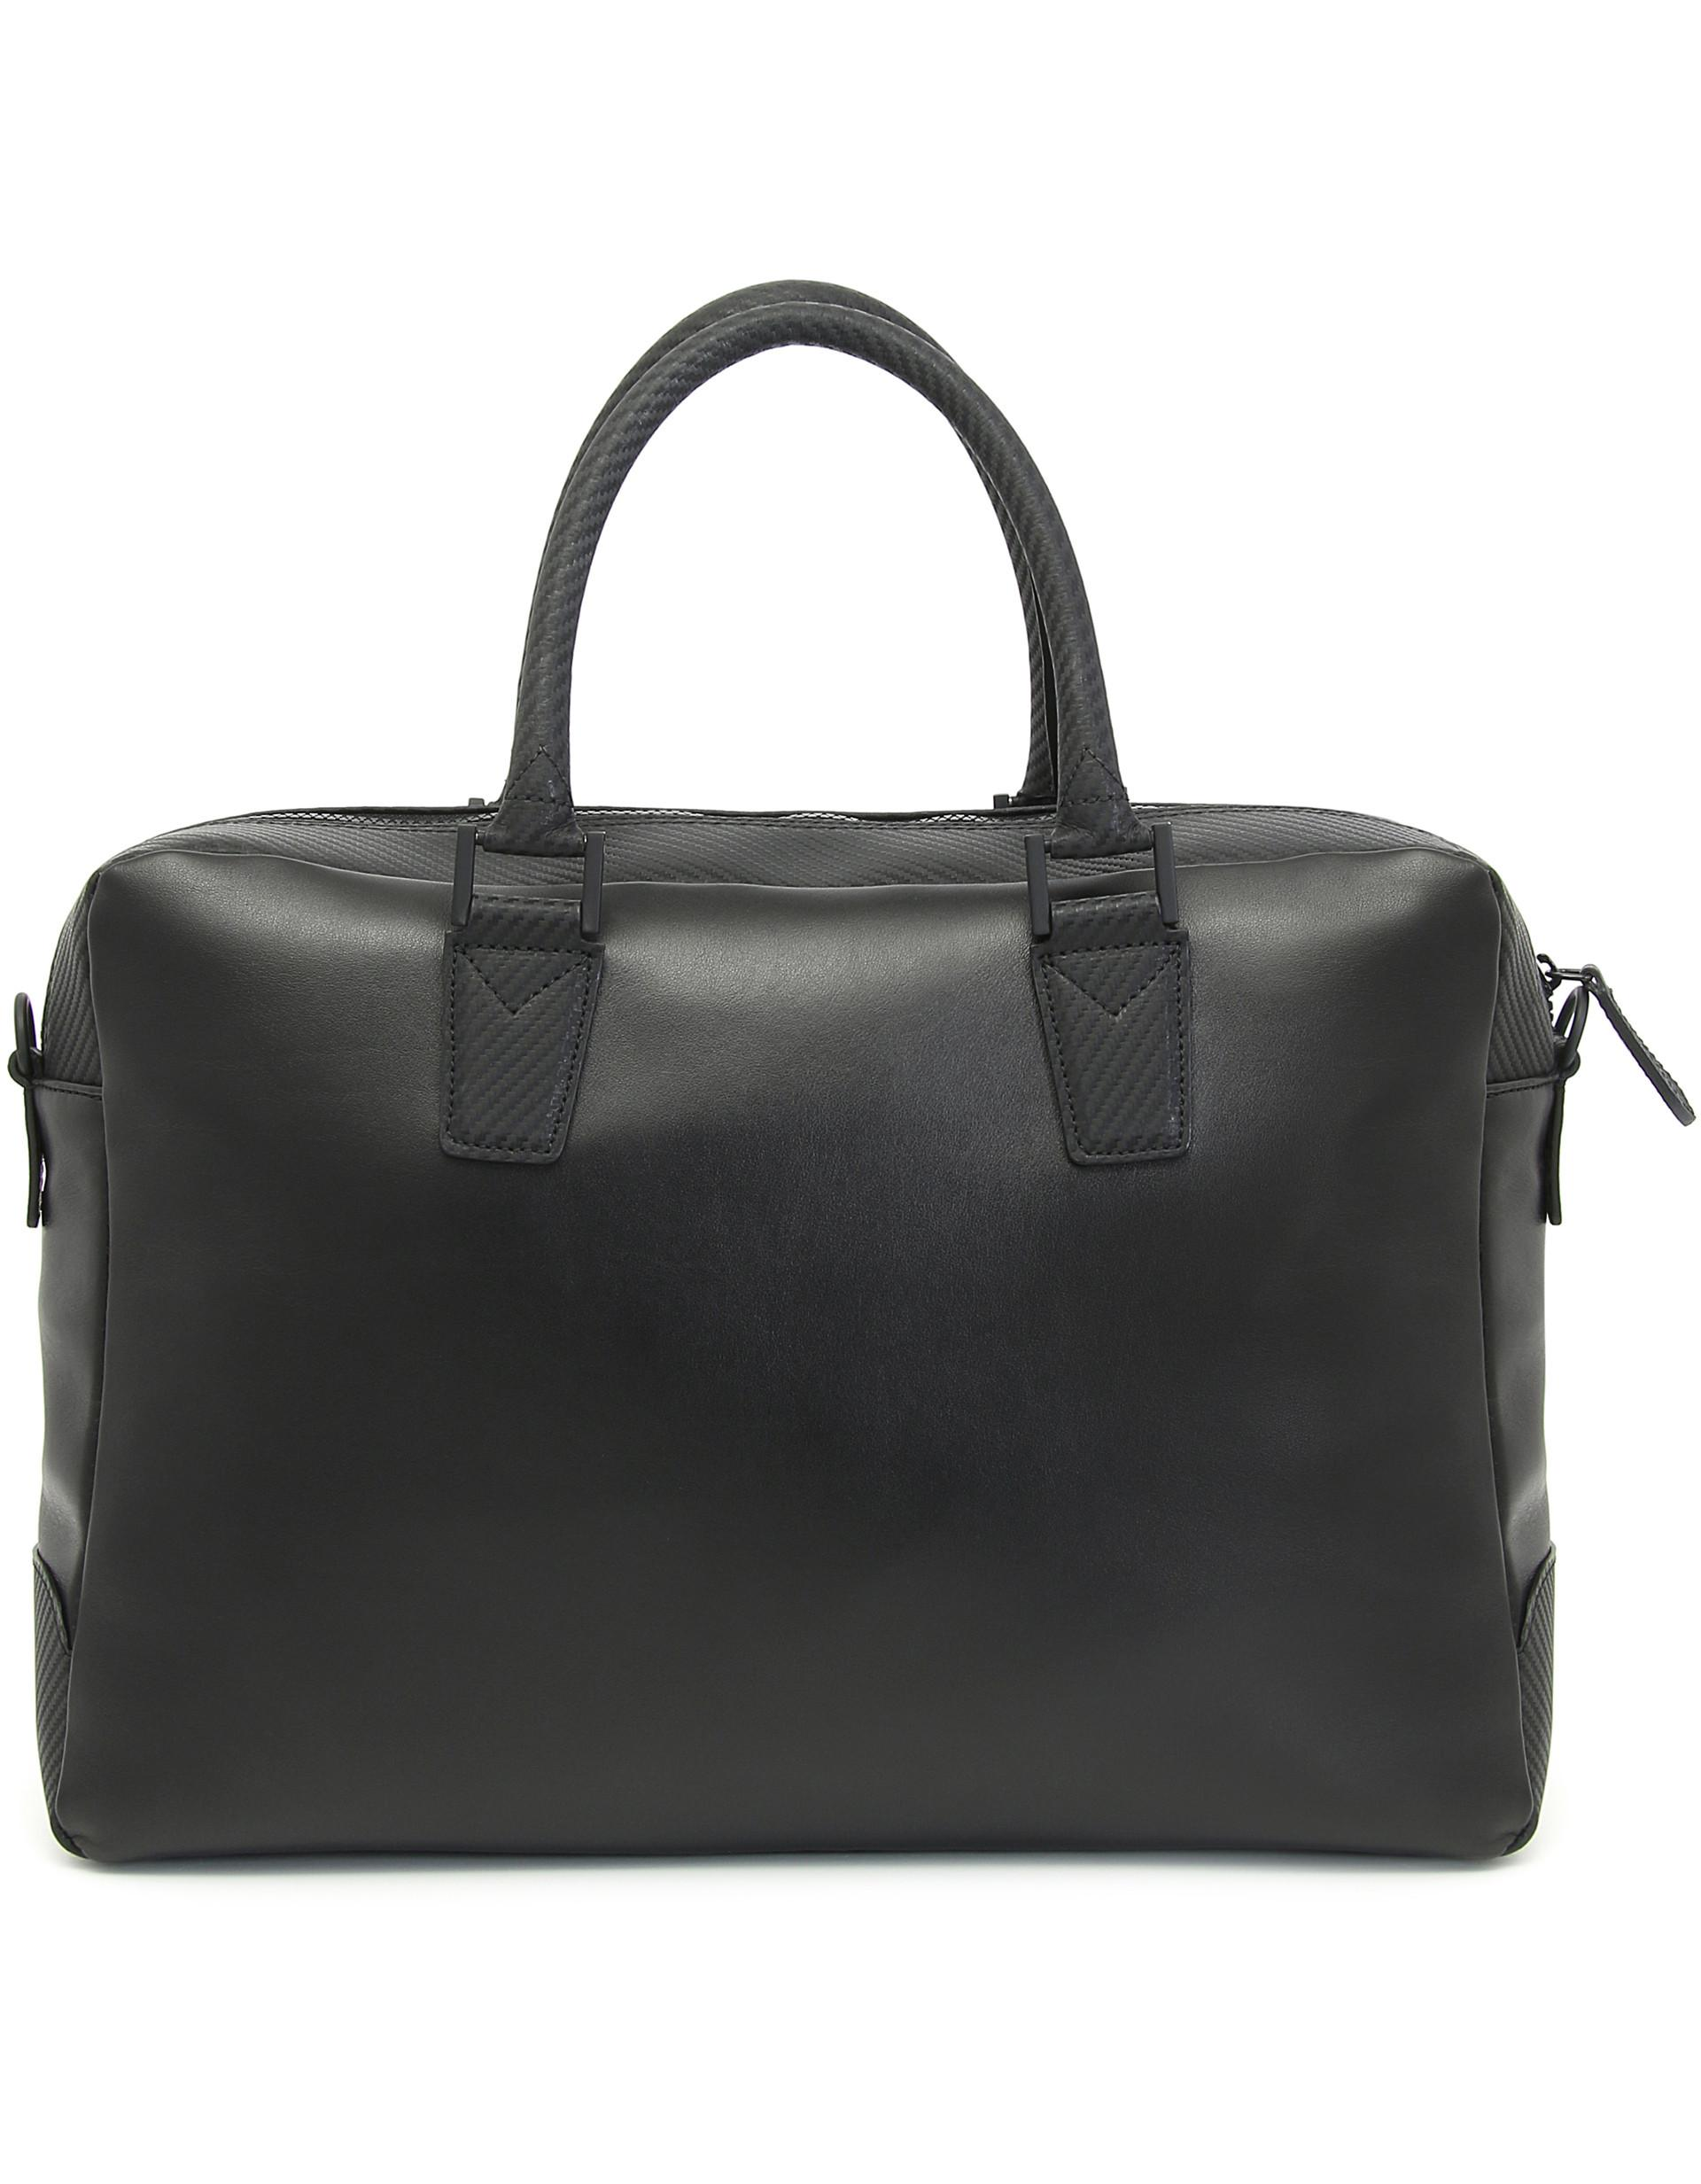 Lyst - Canali Black Carbon Textured Calfskin Leather Bag in Black for Men c3ae741697c8c